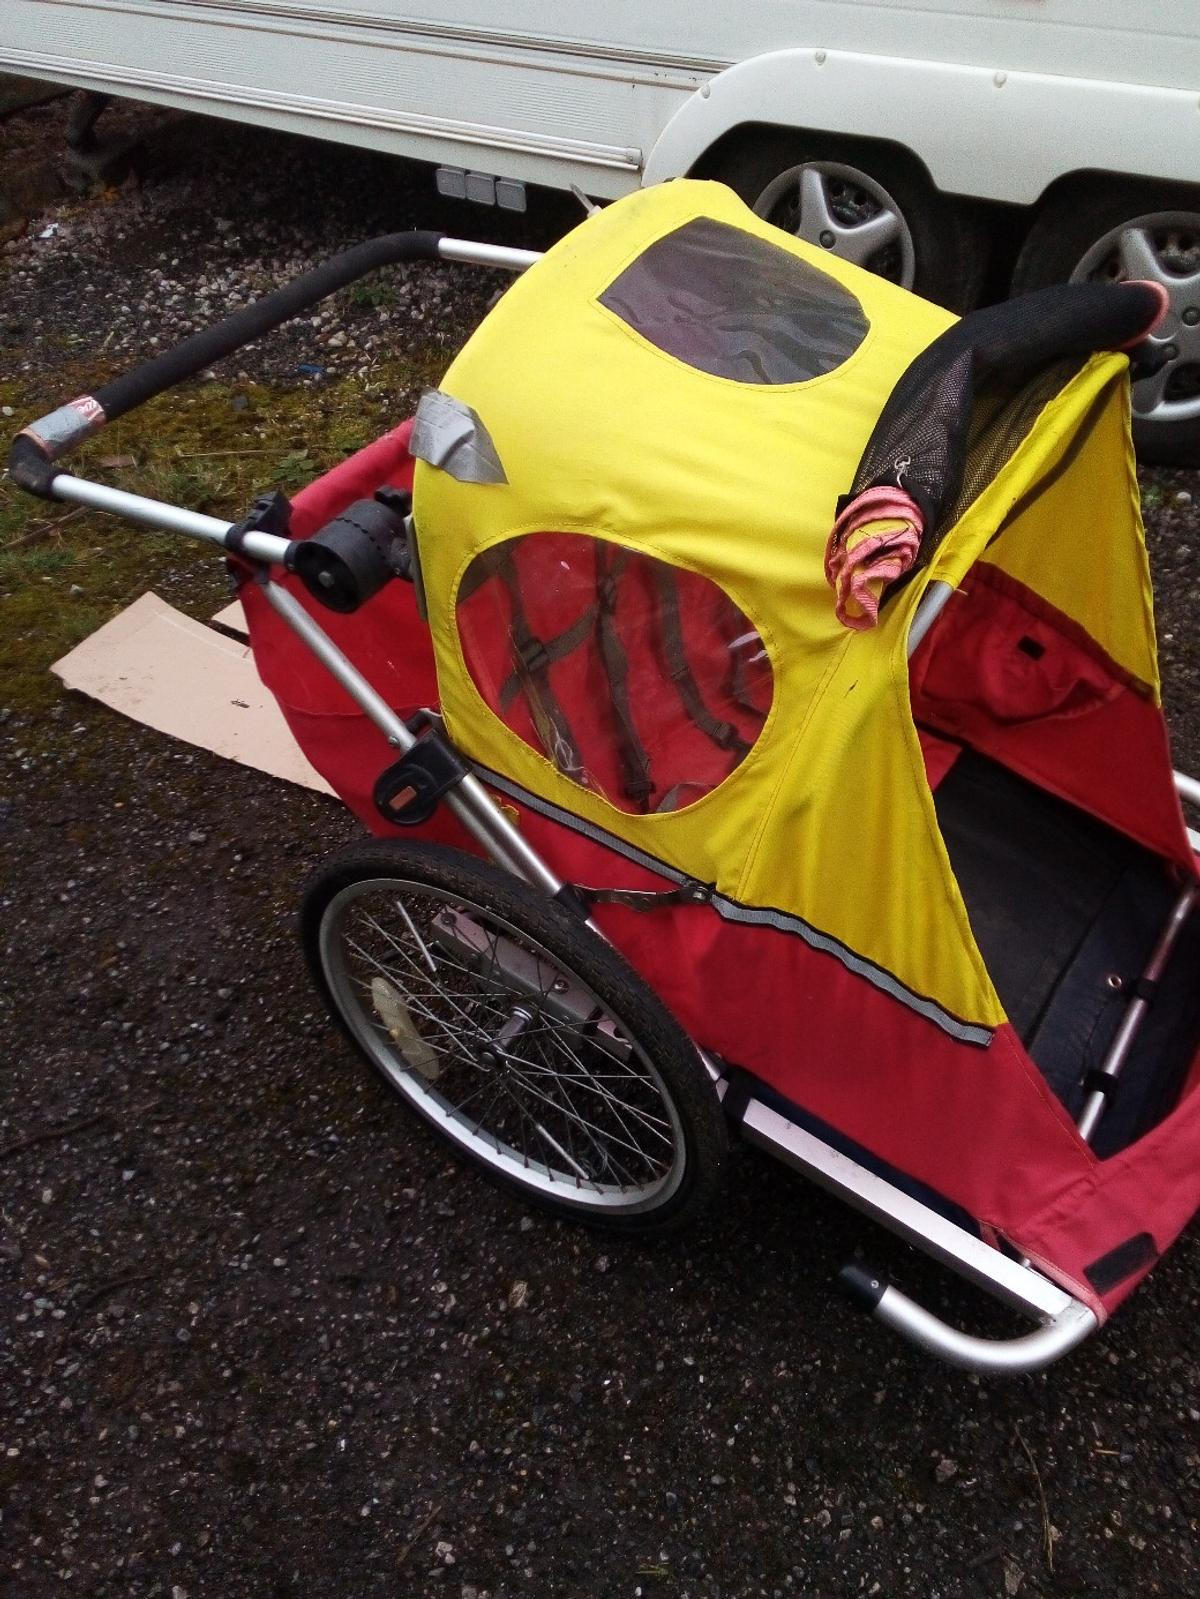 unbranded child bike trailer with hitch bar, all folds flat for ease of storage. two obvious damage areas around each side of the hinge but otherwise a tidy trailer. both wheels straight and true. comes with jockey wheel for USD as pram. will take two small children or one big one. collection from l36 area preferred